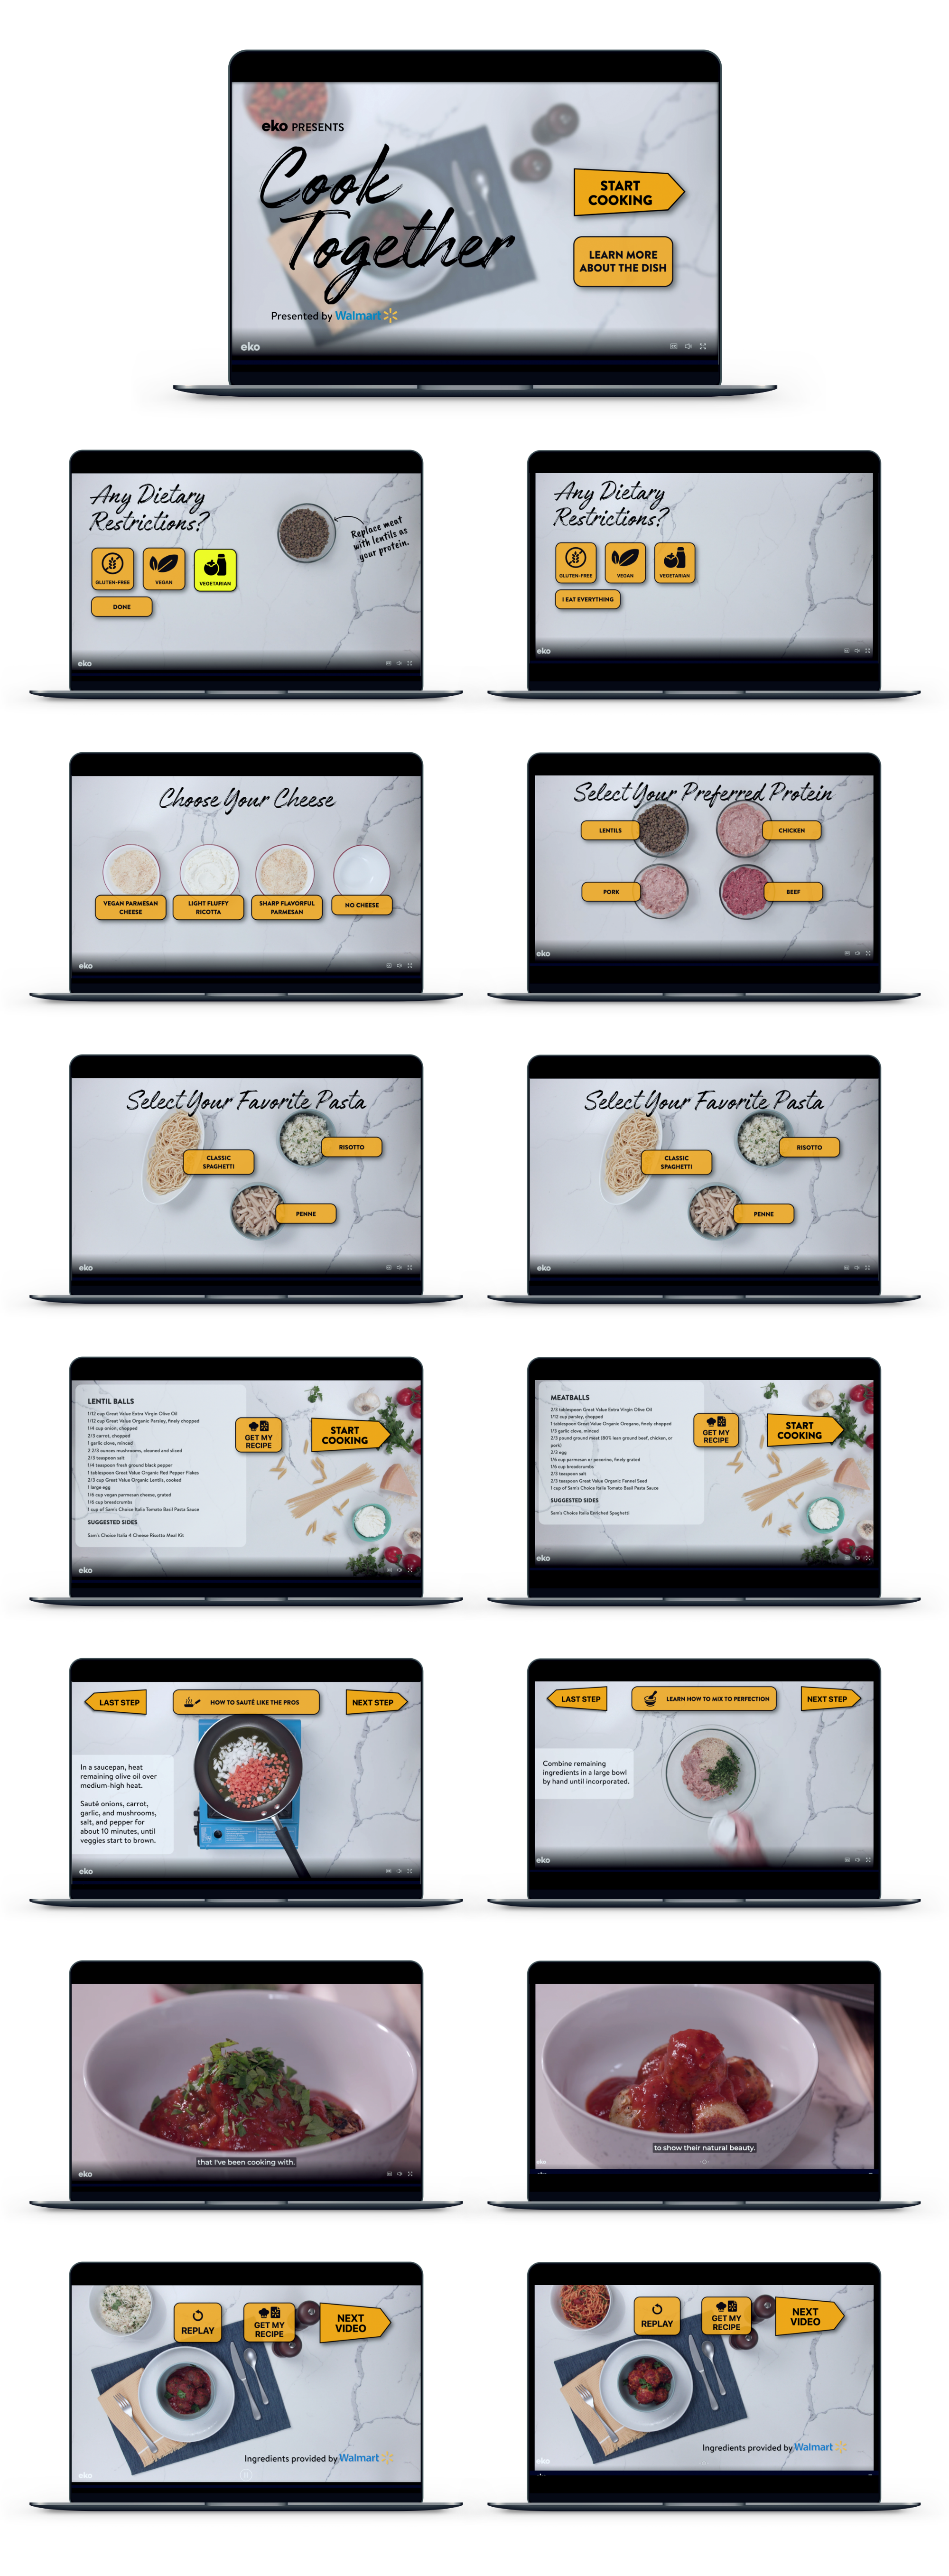 A series of images on computer screens showing the steps to cook a dish